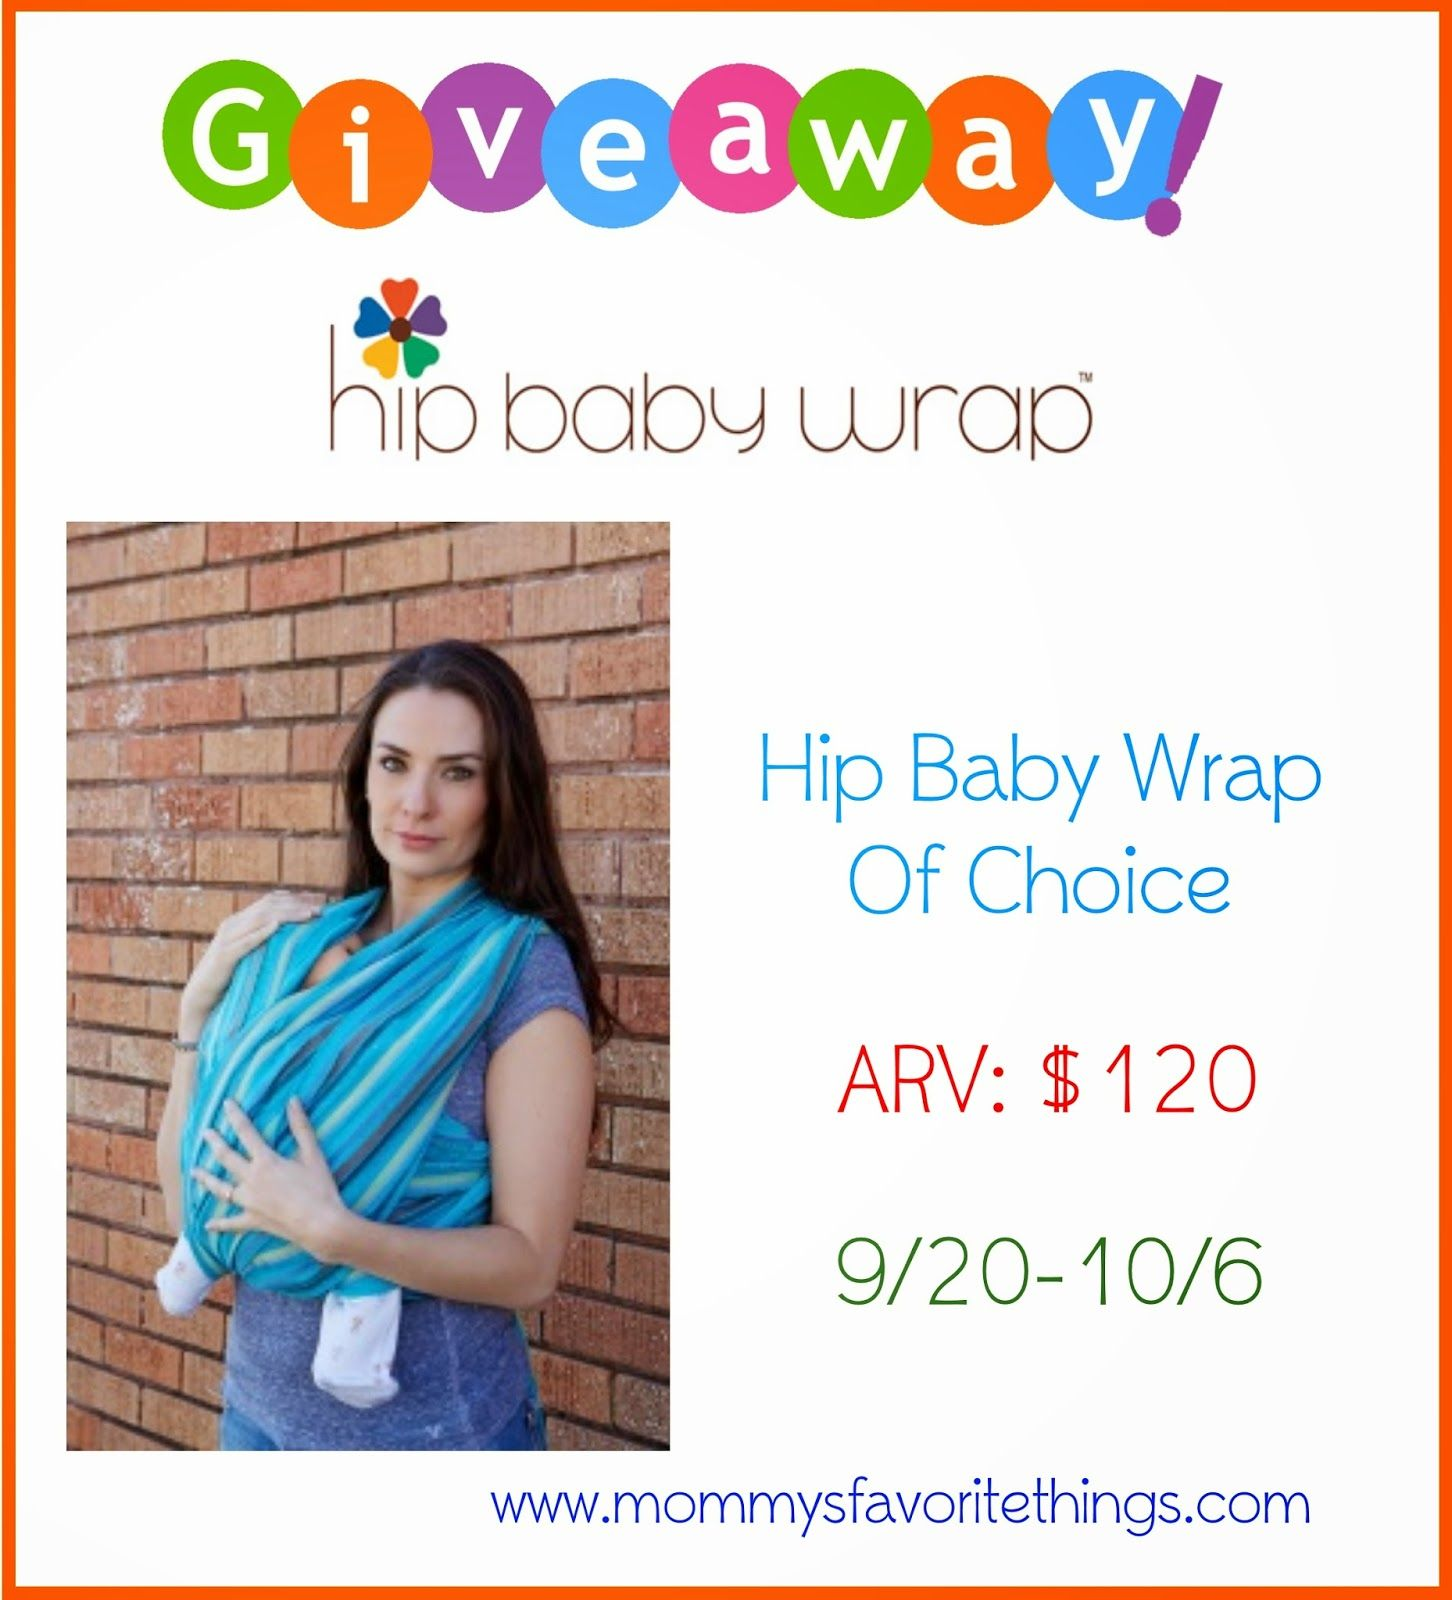 Hip Bab Wrap Giveaway ends 10/6 - ConservaMom